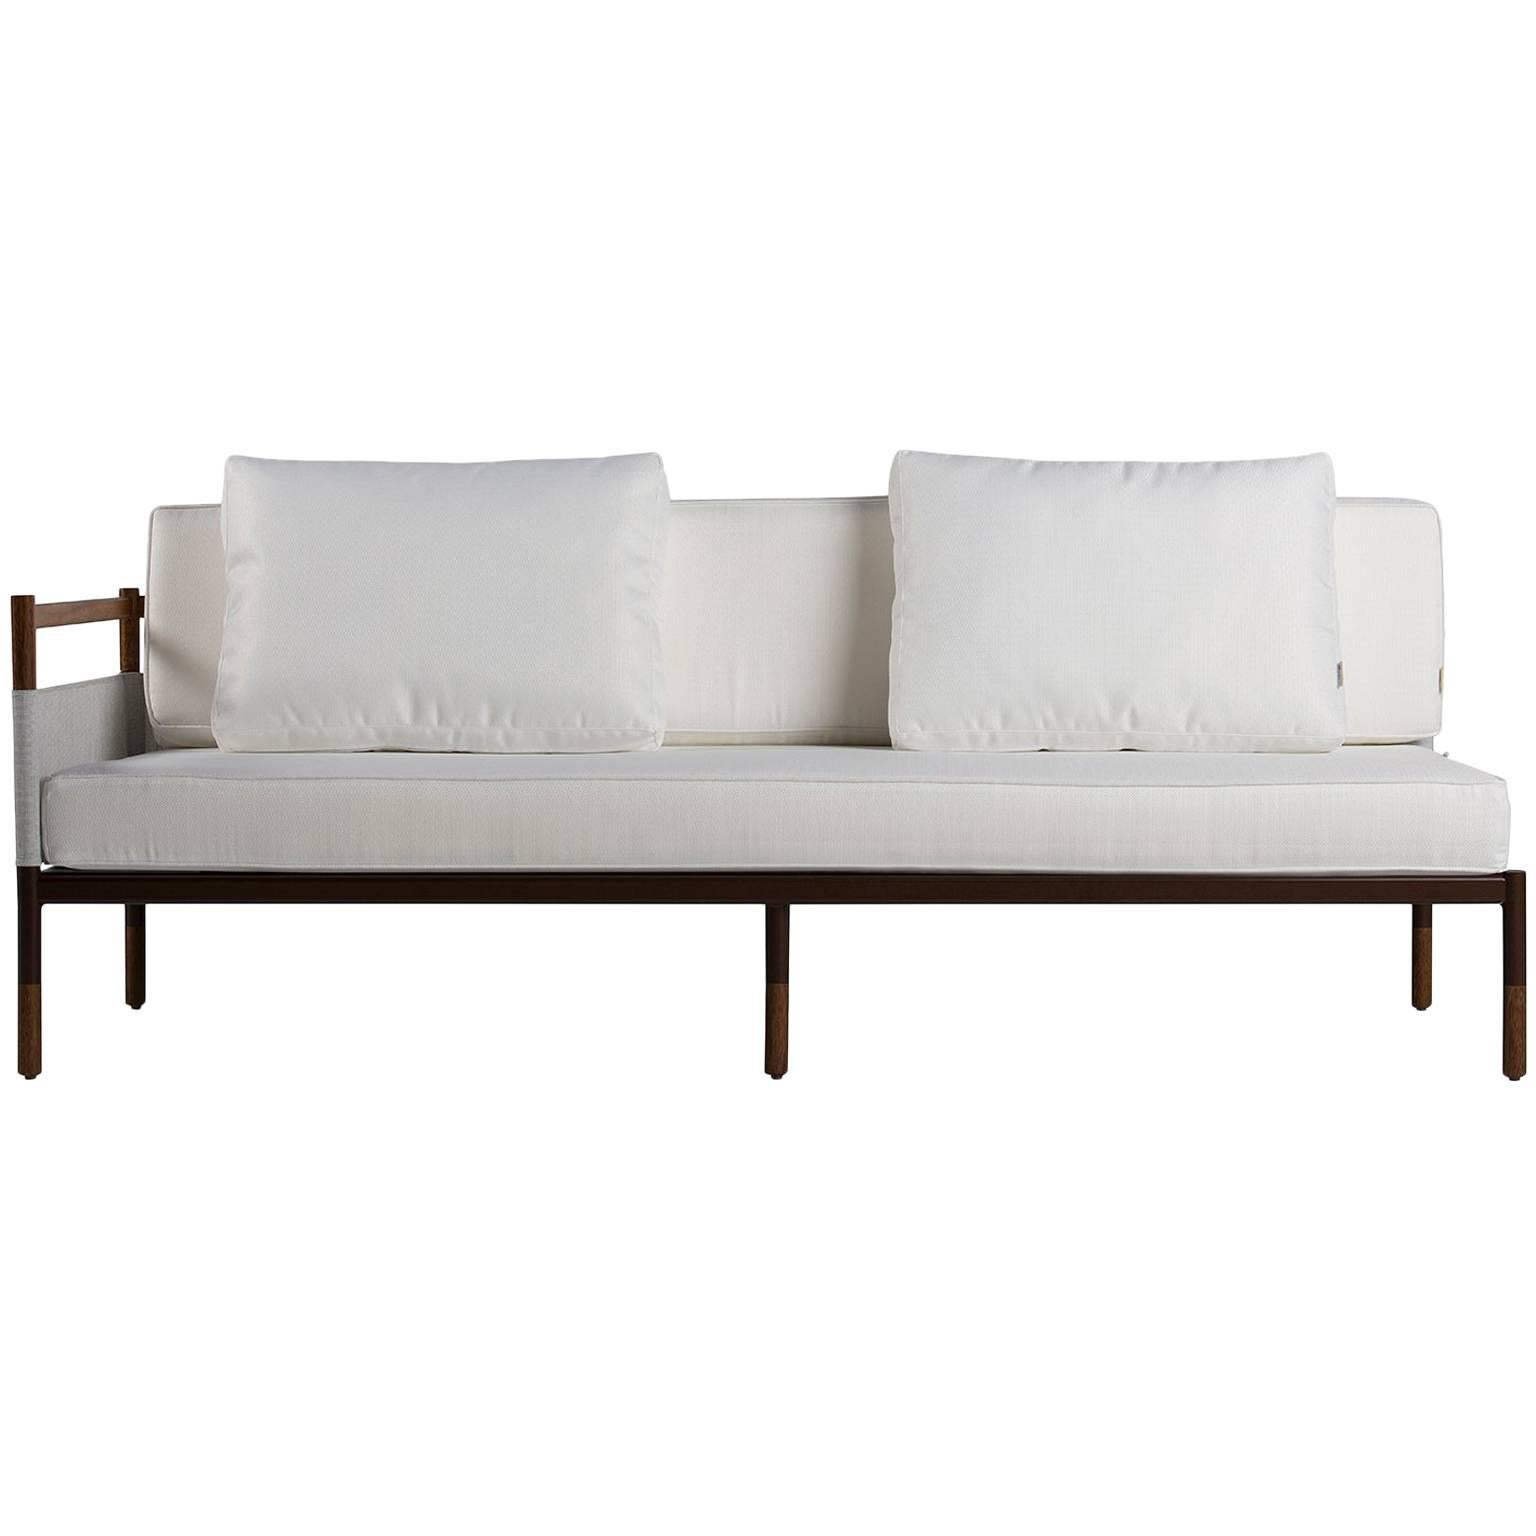 Superieur Minimalist Sofa In Hardwood, Metal And Fabric, Usable Outdoors